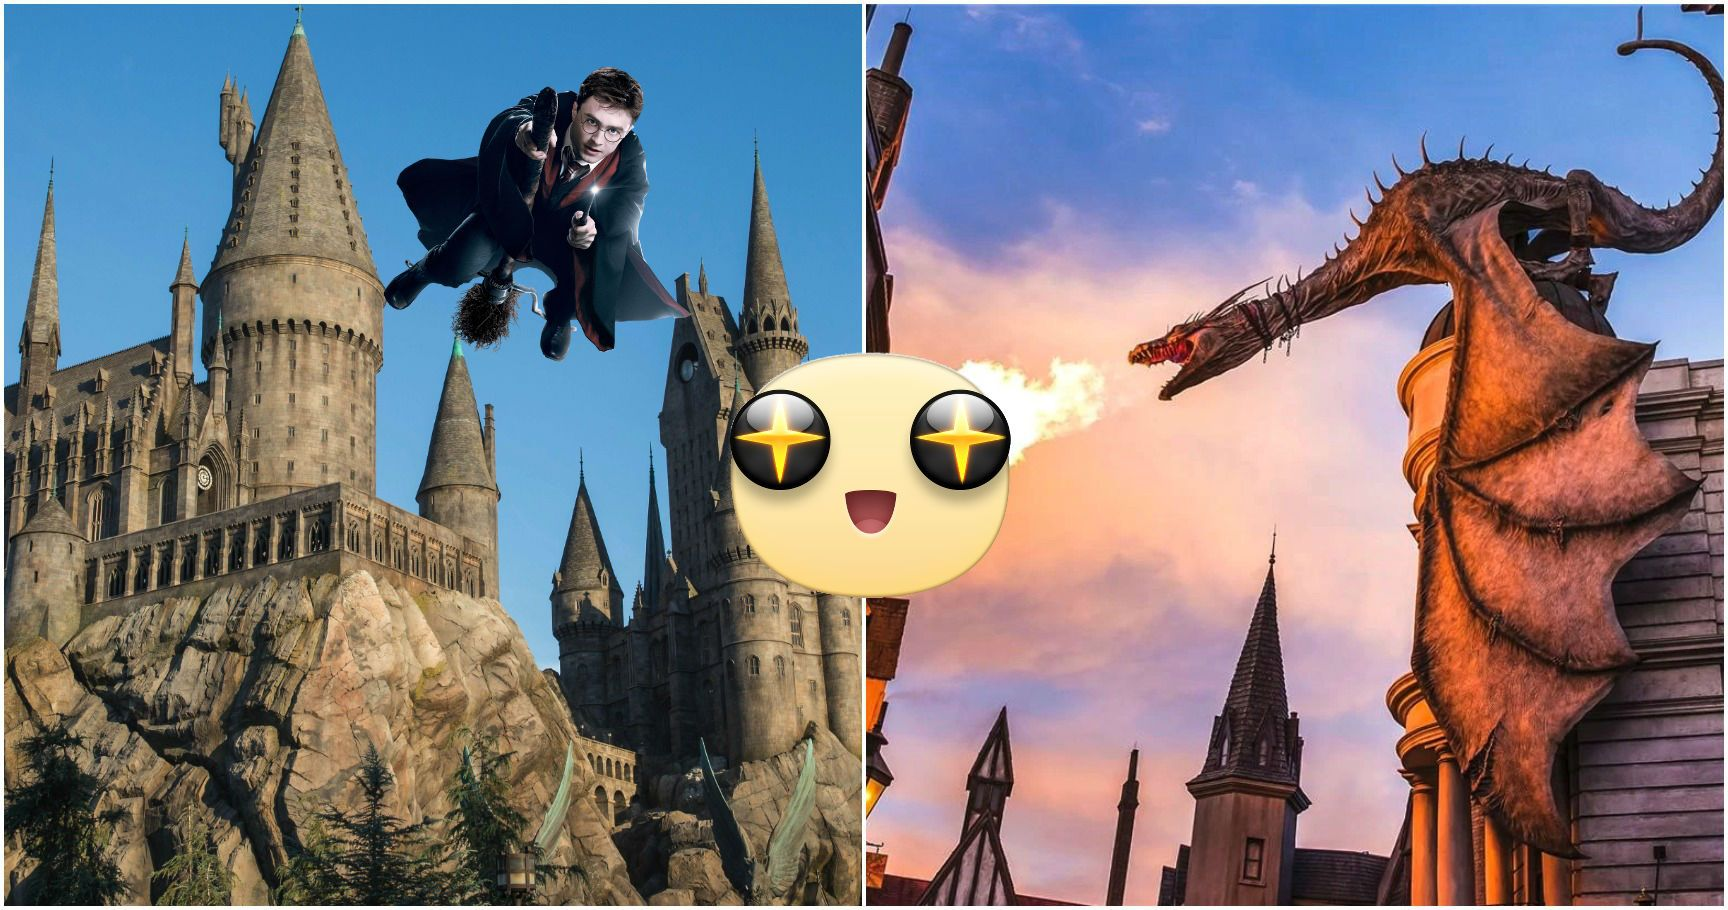 15 Wizarding World Of Harry Potter Hacks And Easter Eggs That Are Magical AF